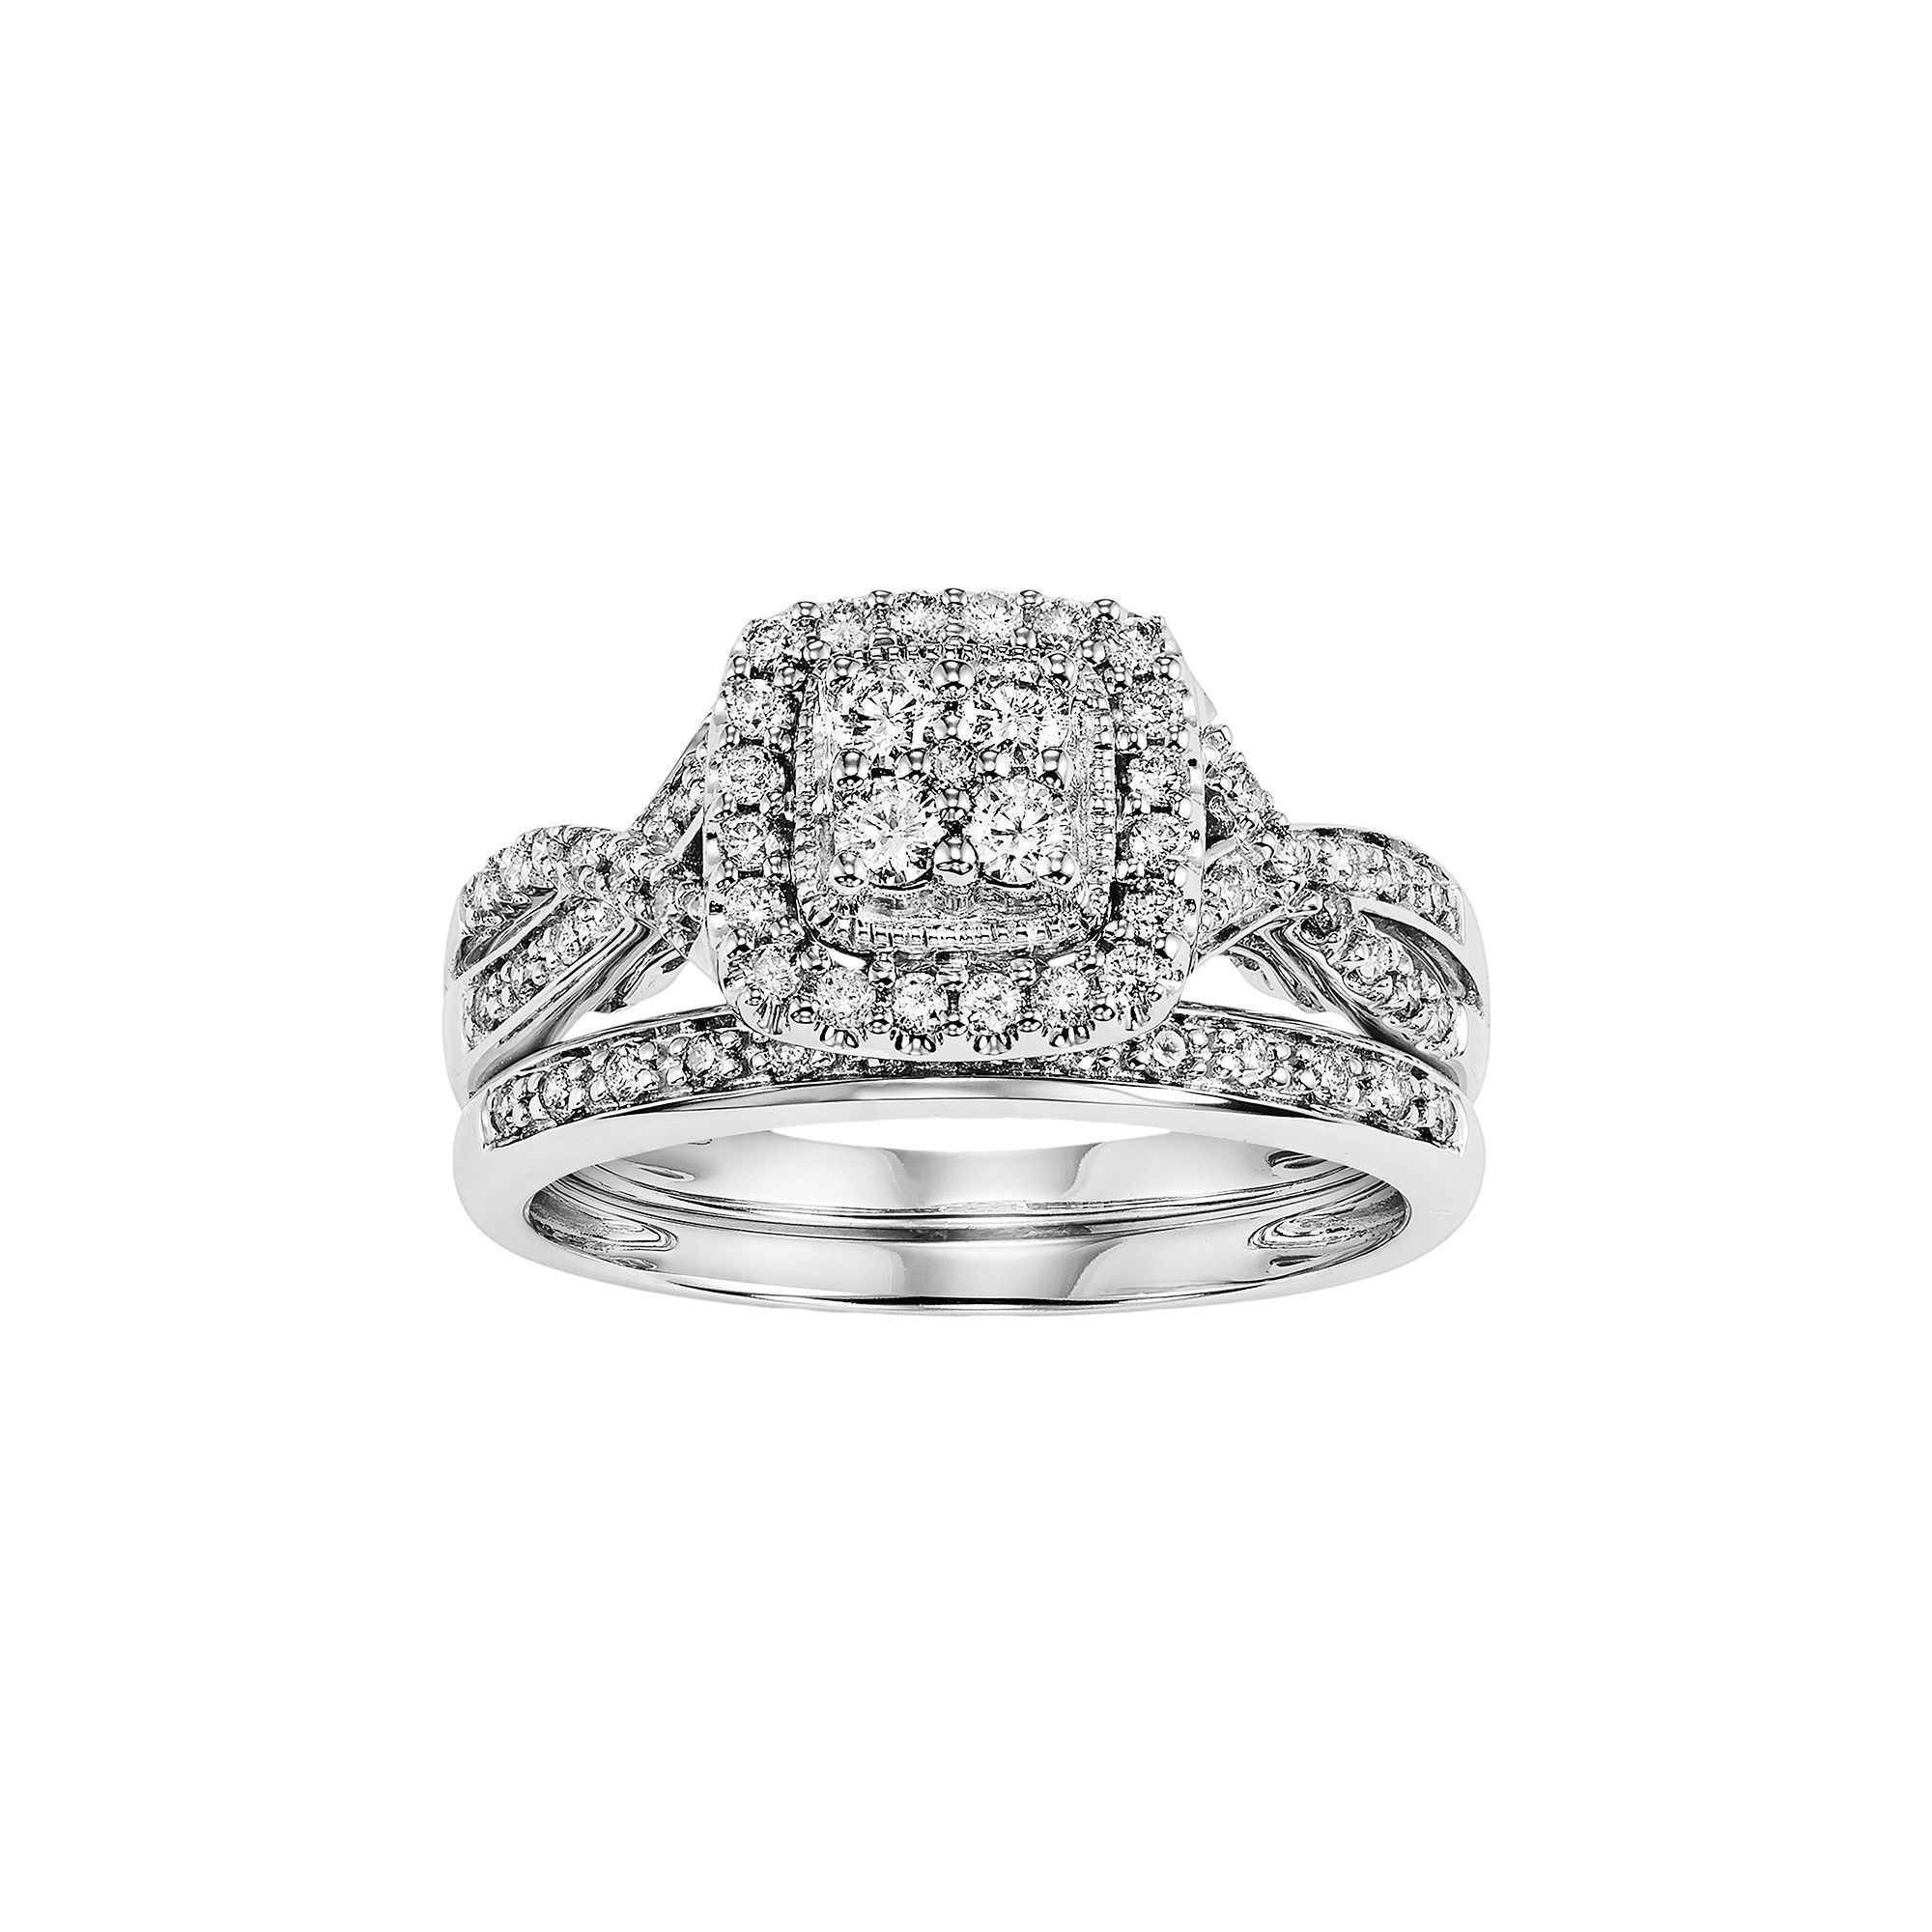 scale the square cut crop shop harmony subsampling diamond upscale false engagement product radiant boodles ring rings